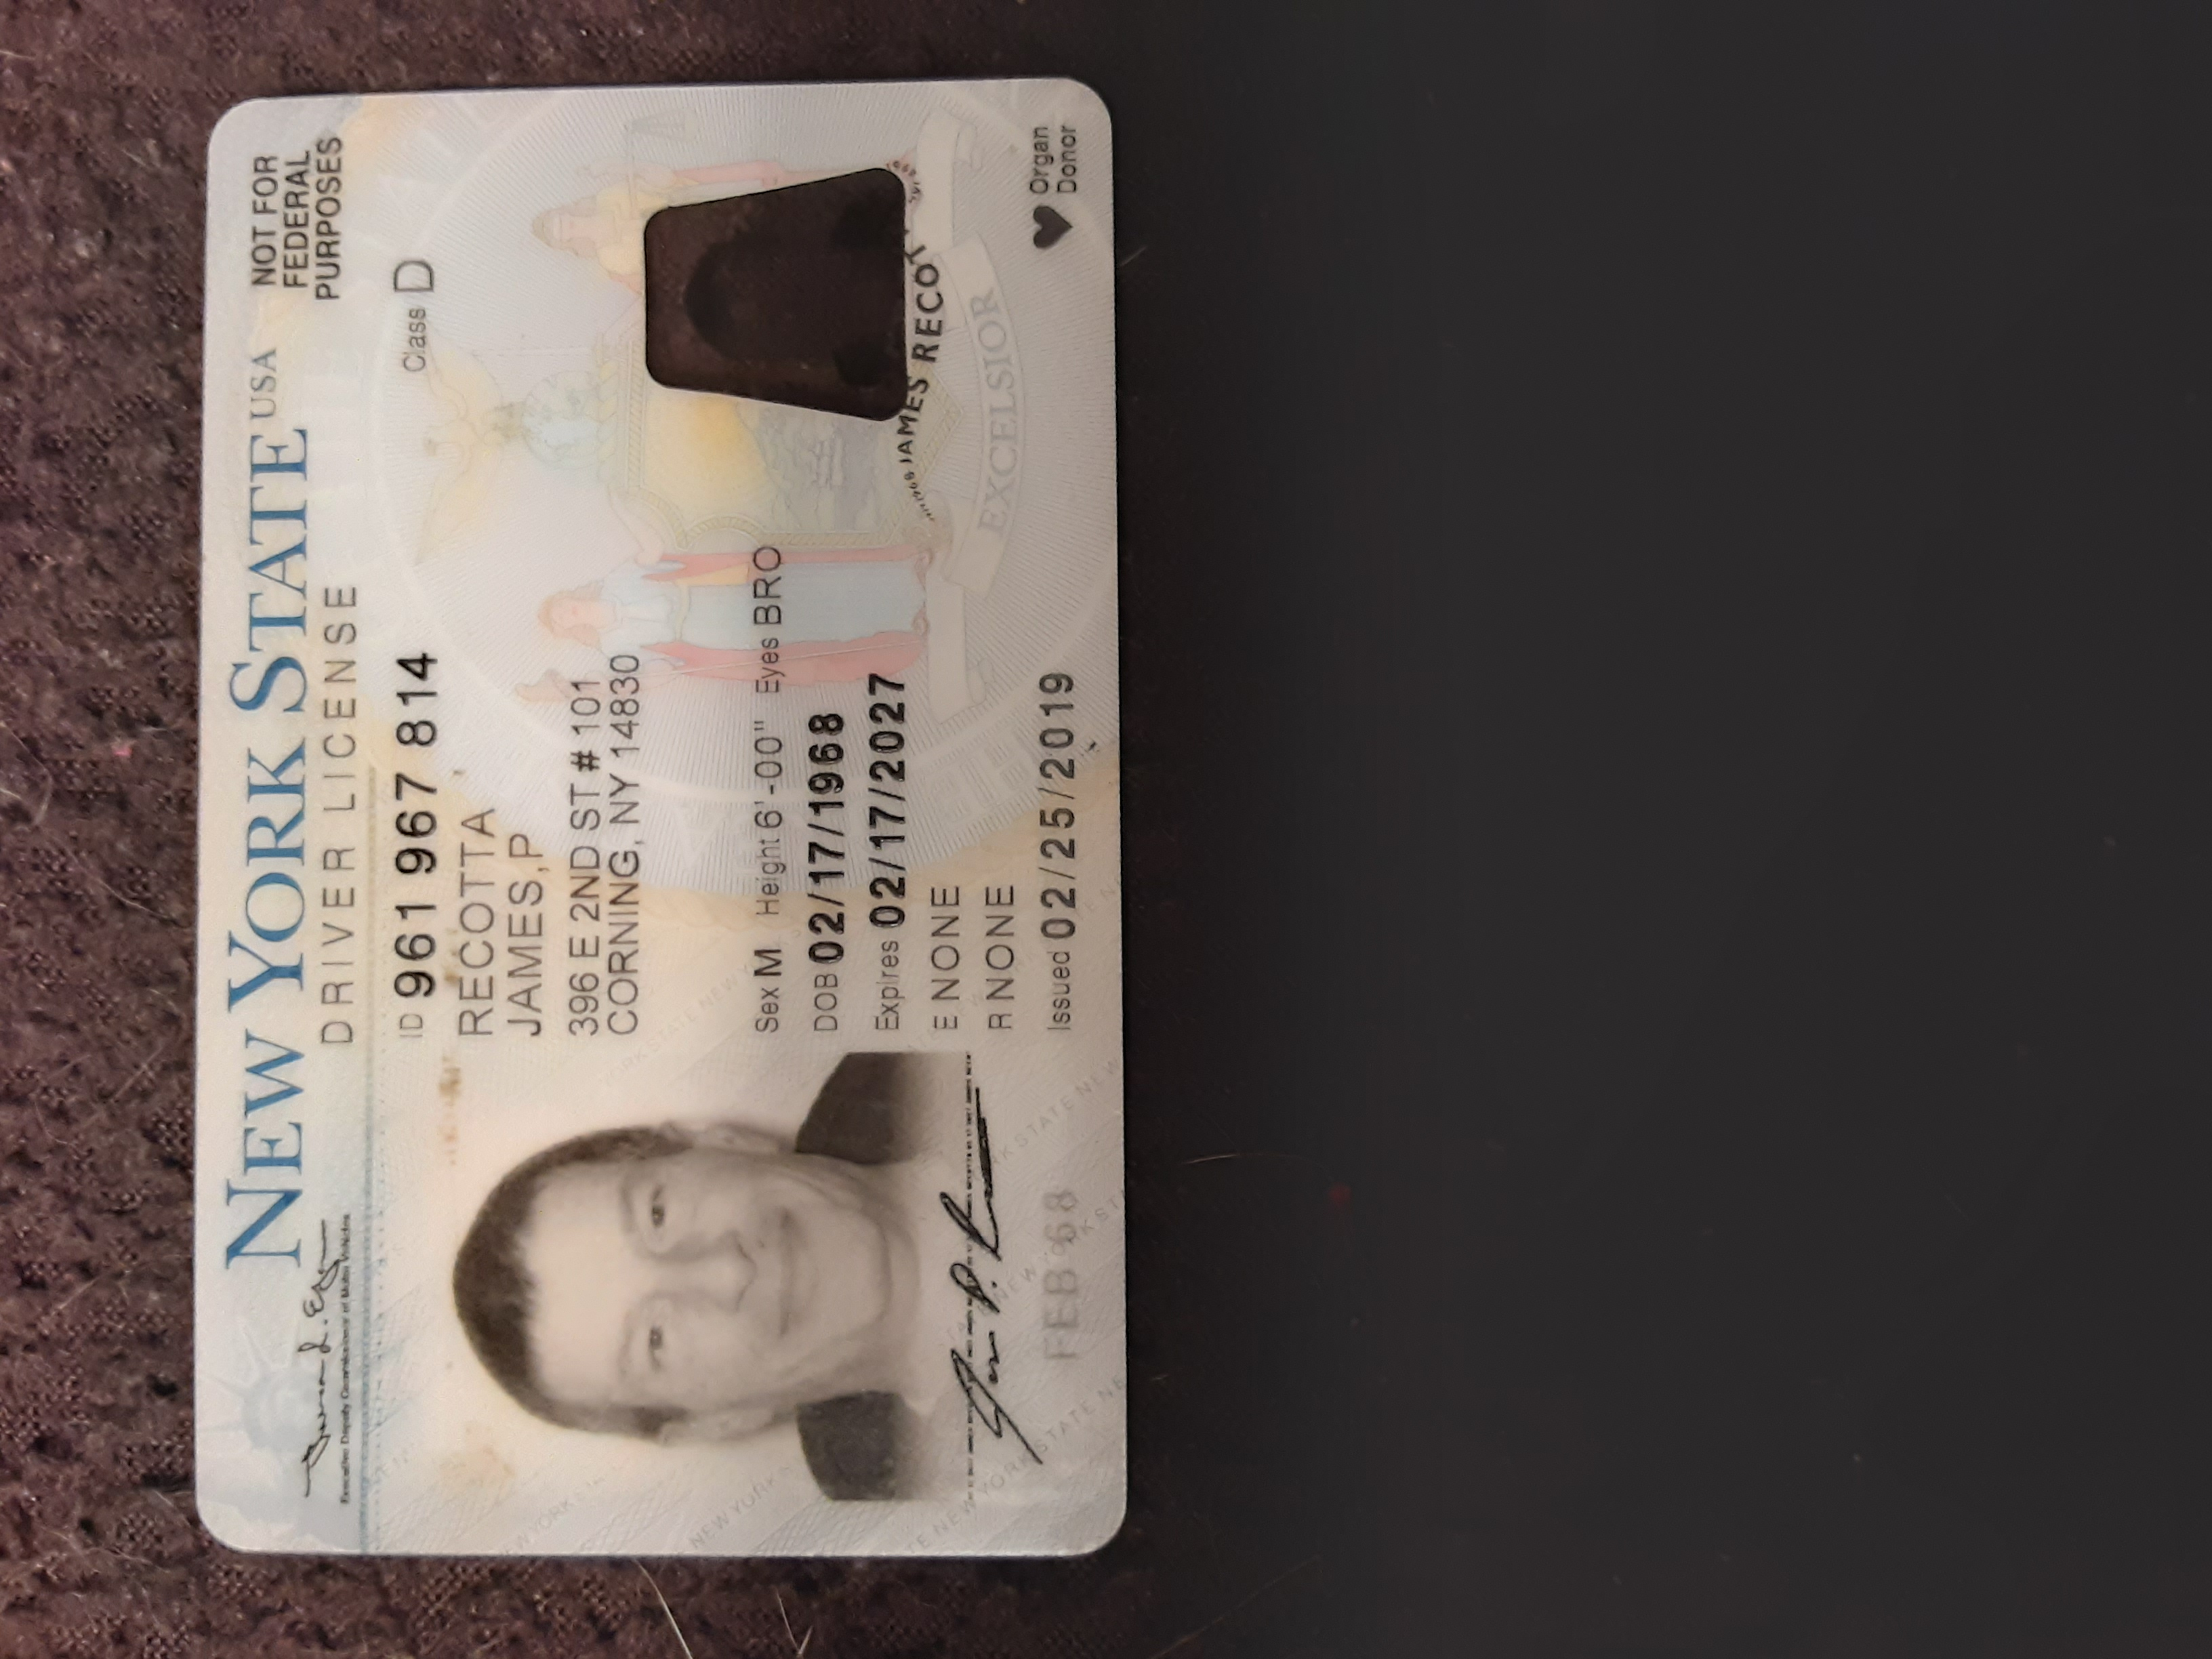 Upload a photo of your Driver's License